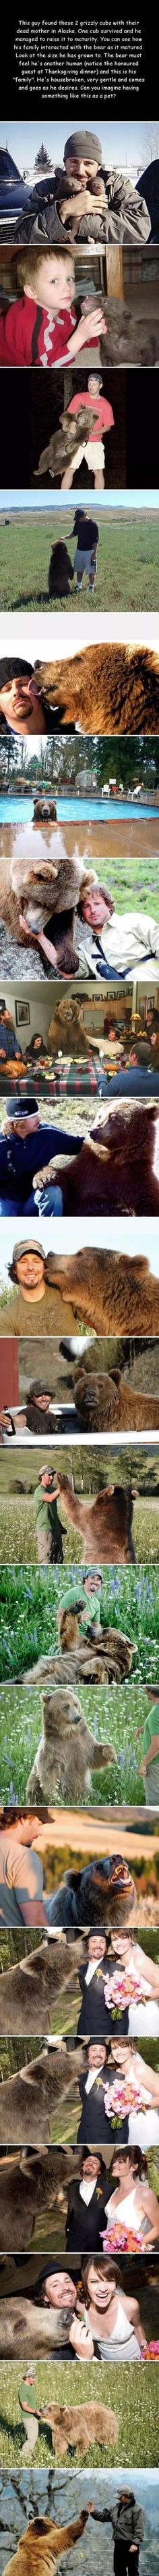 Grizzly becomes family... Absolutely sweet :)